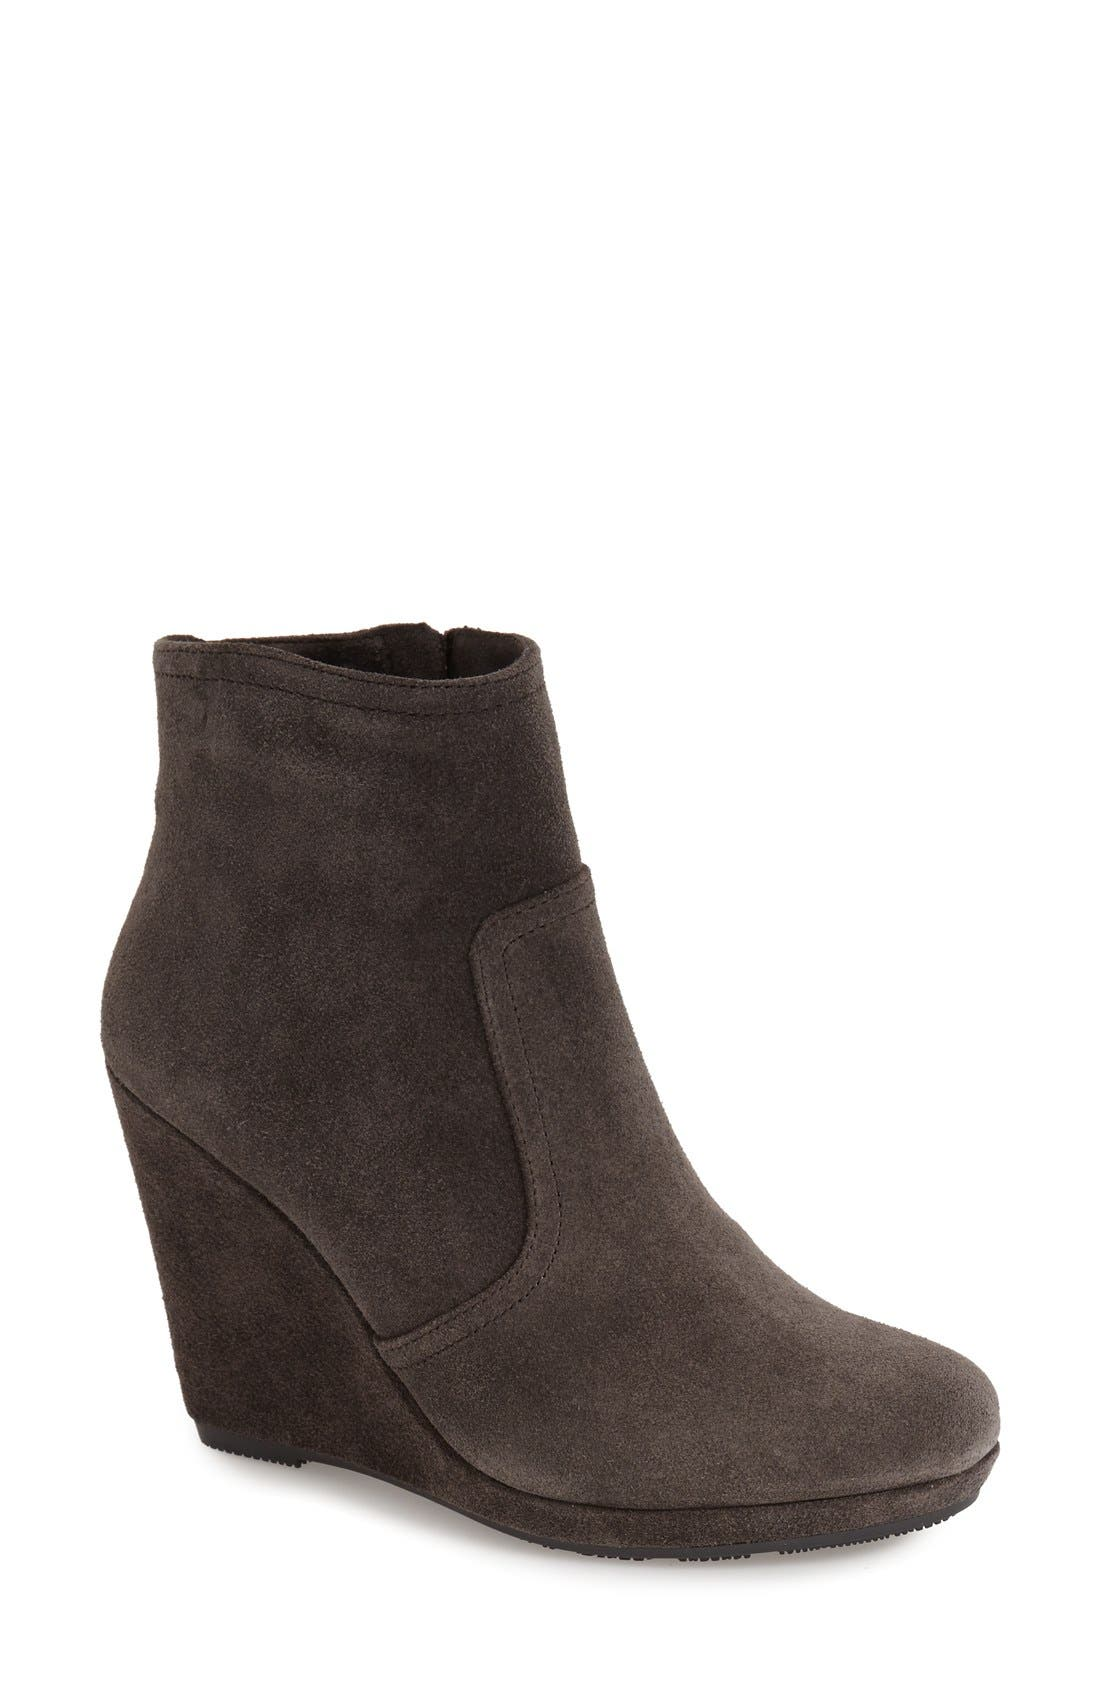 Main Image - Vince Camuto 'Abrum' Wedge Bootie (Women)